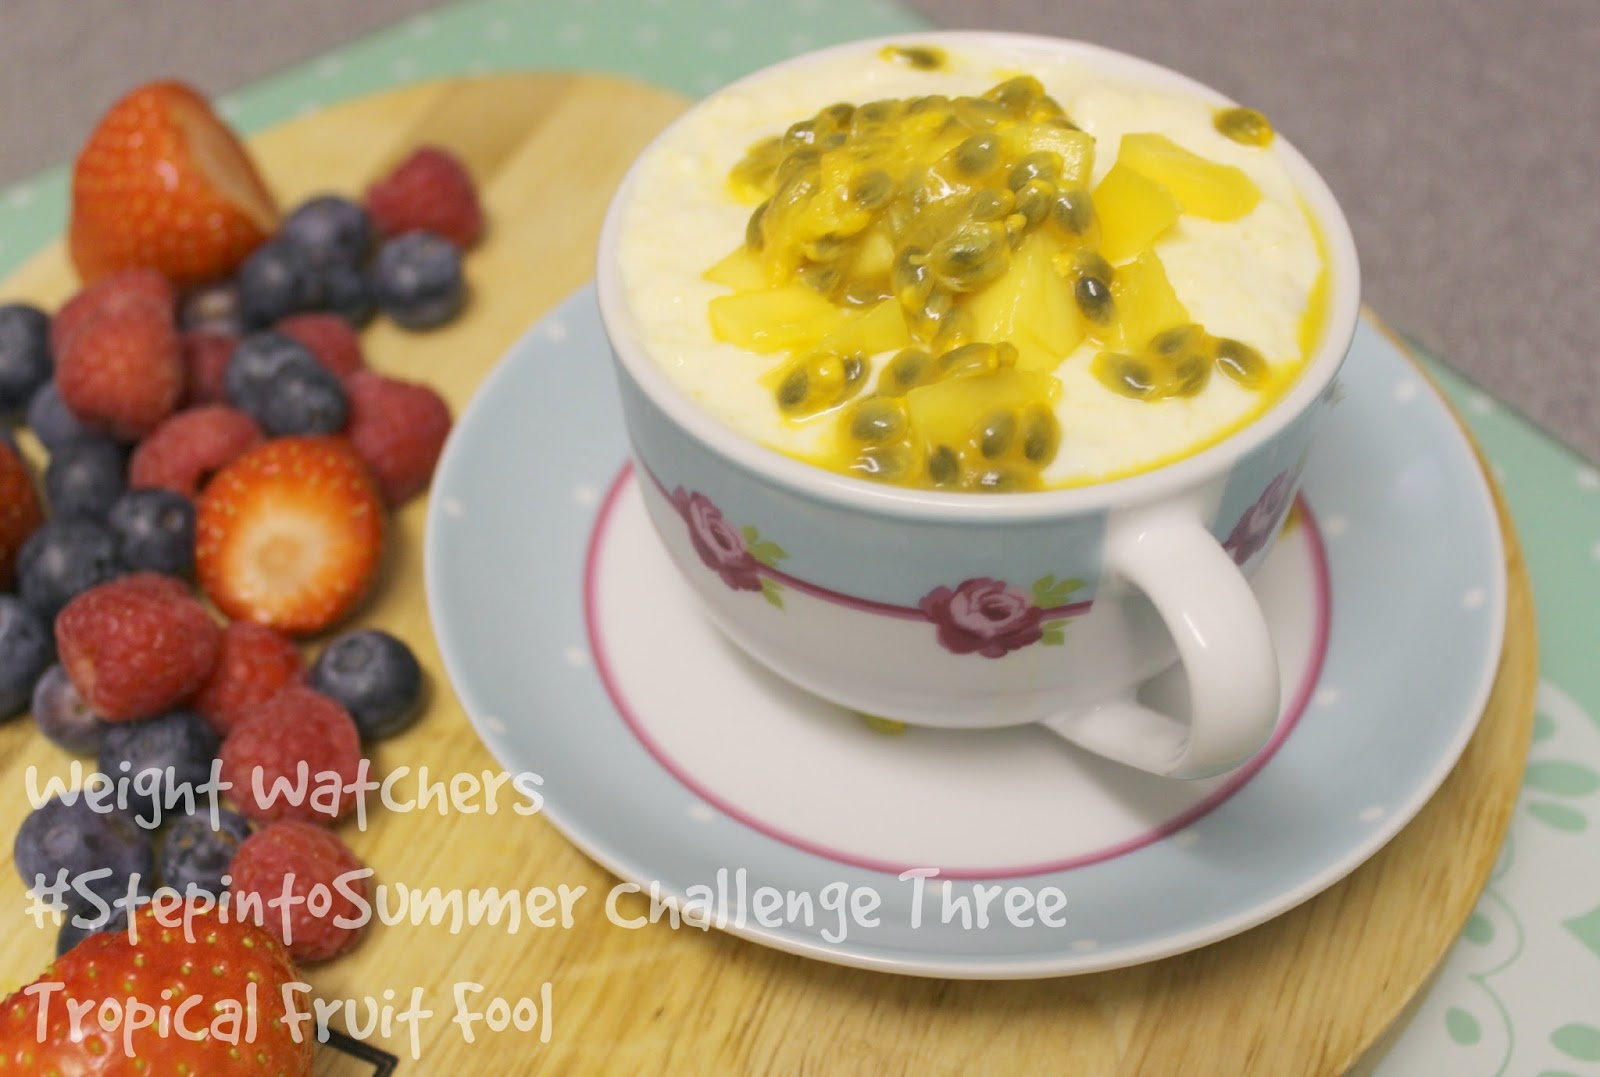 Weight Watchers Simple Start Tropical Fruit Fool